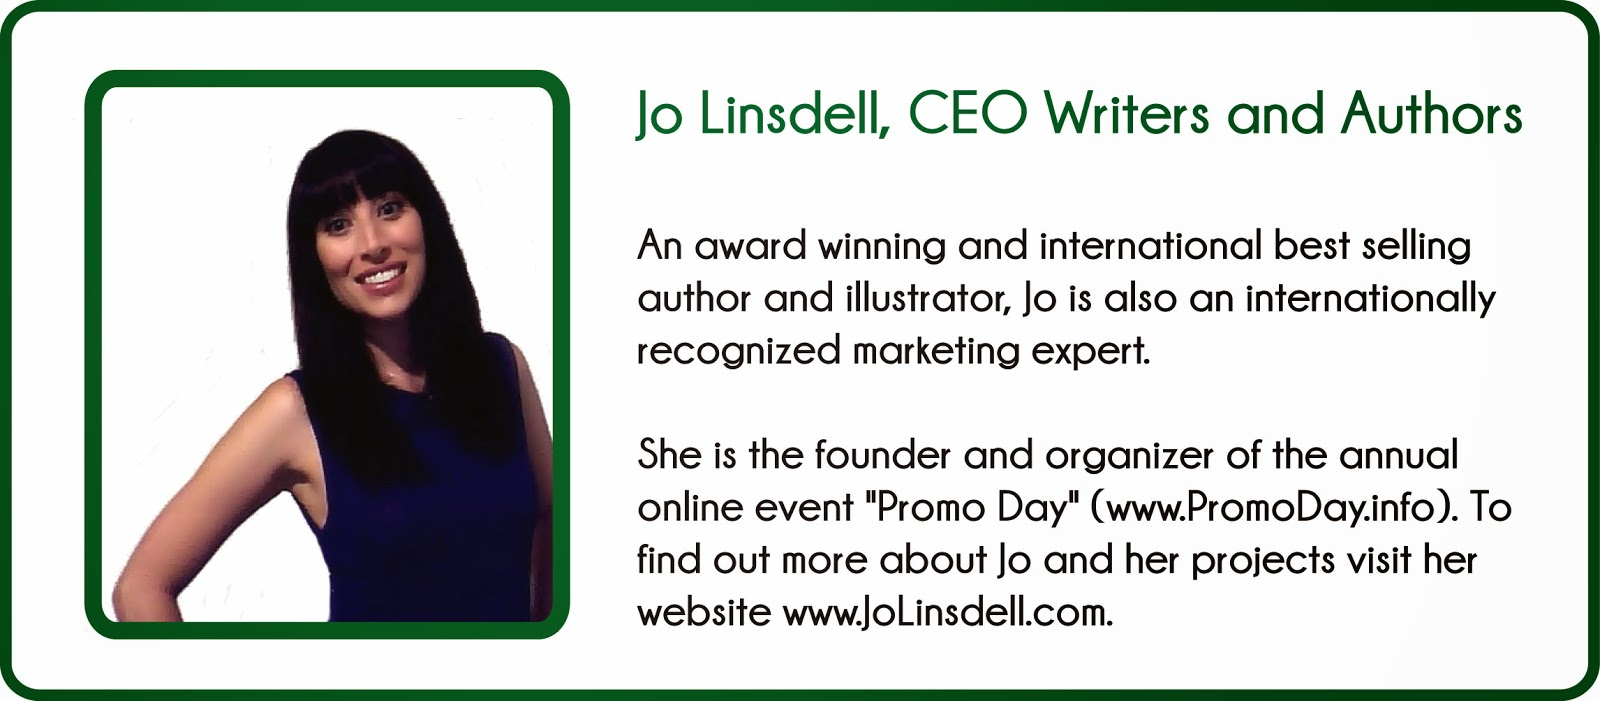 Jo Linsdell, CEO Writers and Authors